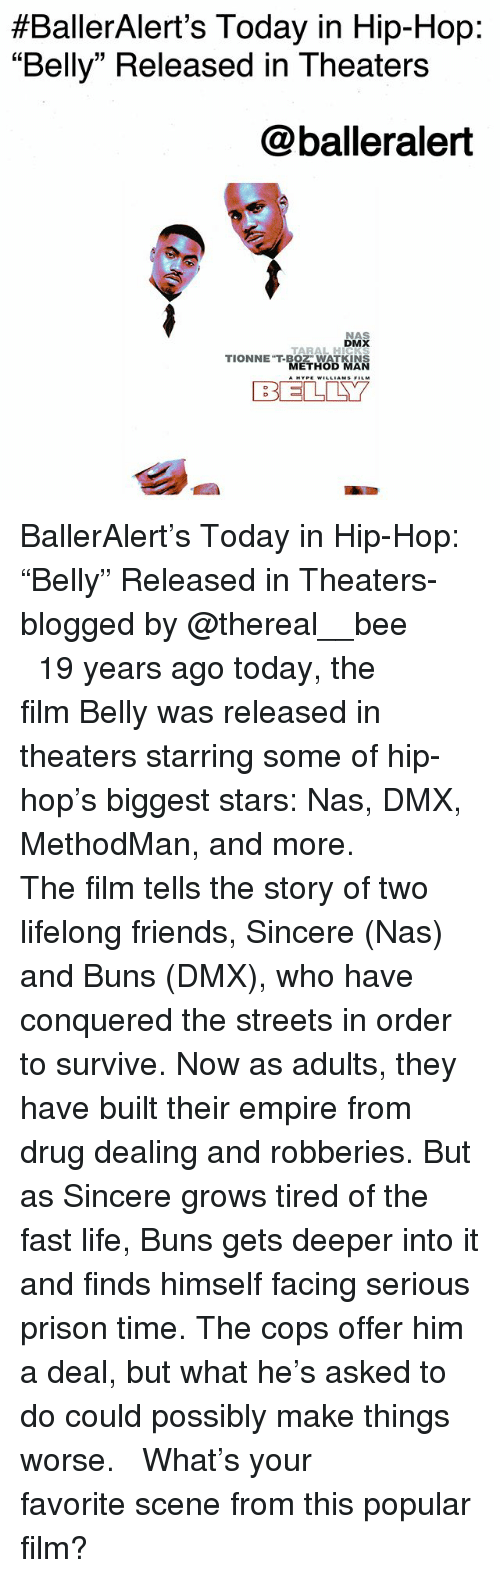 "Dmx, Empire, and Friends:  #BallerAlert's Today in Hip-Hop:  ""Belly"" Released in Theaters  @balleralert  NAS  DMX  TARAL HICKS  TIONNET-BOZ"" WATKINS  METHOD MAN  BELLY BallerAlert's Today in Hip-Hop: ""Belly"" Released in Theaters-blogged by @thereal__bee ⠀⠀⠀⠀⠀⠀⠀⠀⠀ ⠀⠀ 19 years ago today, the film Belly was released in theaters starring some of hip-hop's biggest stars: Nas, DMX, MethodMan, and more. ⠀⠀⠀⠀⠀⠀⠀⠀⠀ ⠀⠀ The film tells the story of two lifelong friends, Sincere (Nas) and Buns (DMX), who have conquered the streets in order to survive. Now as adults, they have built their empire from drug dealing and robberies. But as Sincere grows tired of the fast life, Buns gets deeper into it and finds himself facing serious prison time. The cops offer him a deal, but what he's asked to do could possibly make things worse. ⠀⠀⠀⠀⠀⠀⠀⠀⠀ ⠀⠀ What's your favorite scene from this popular film?"